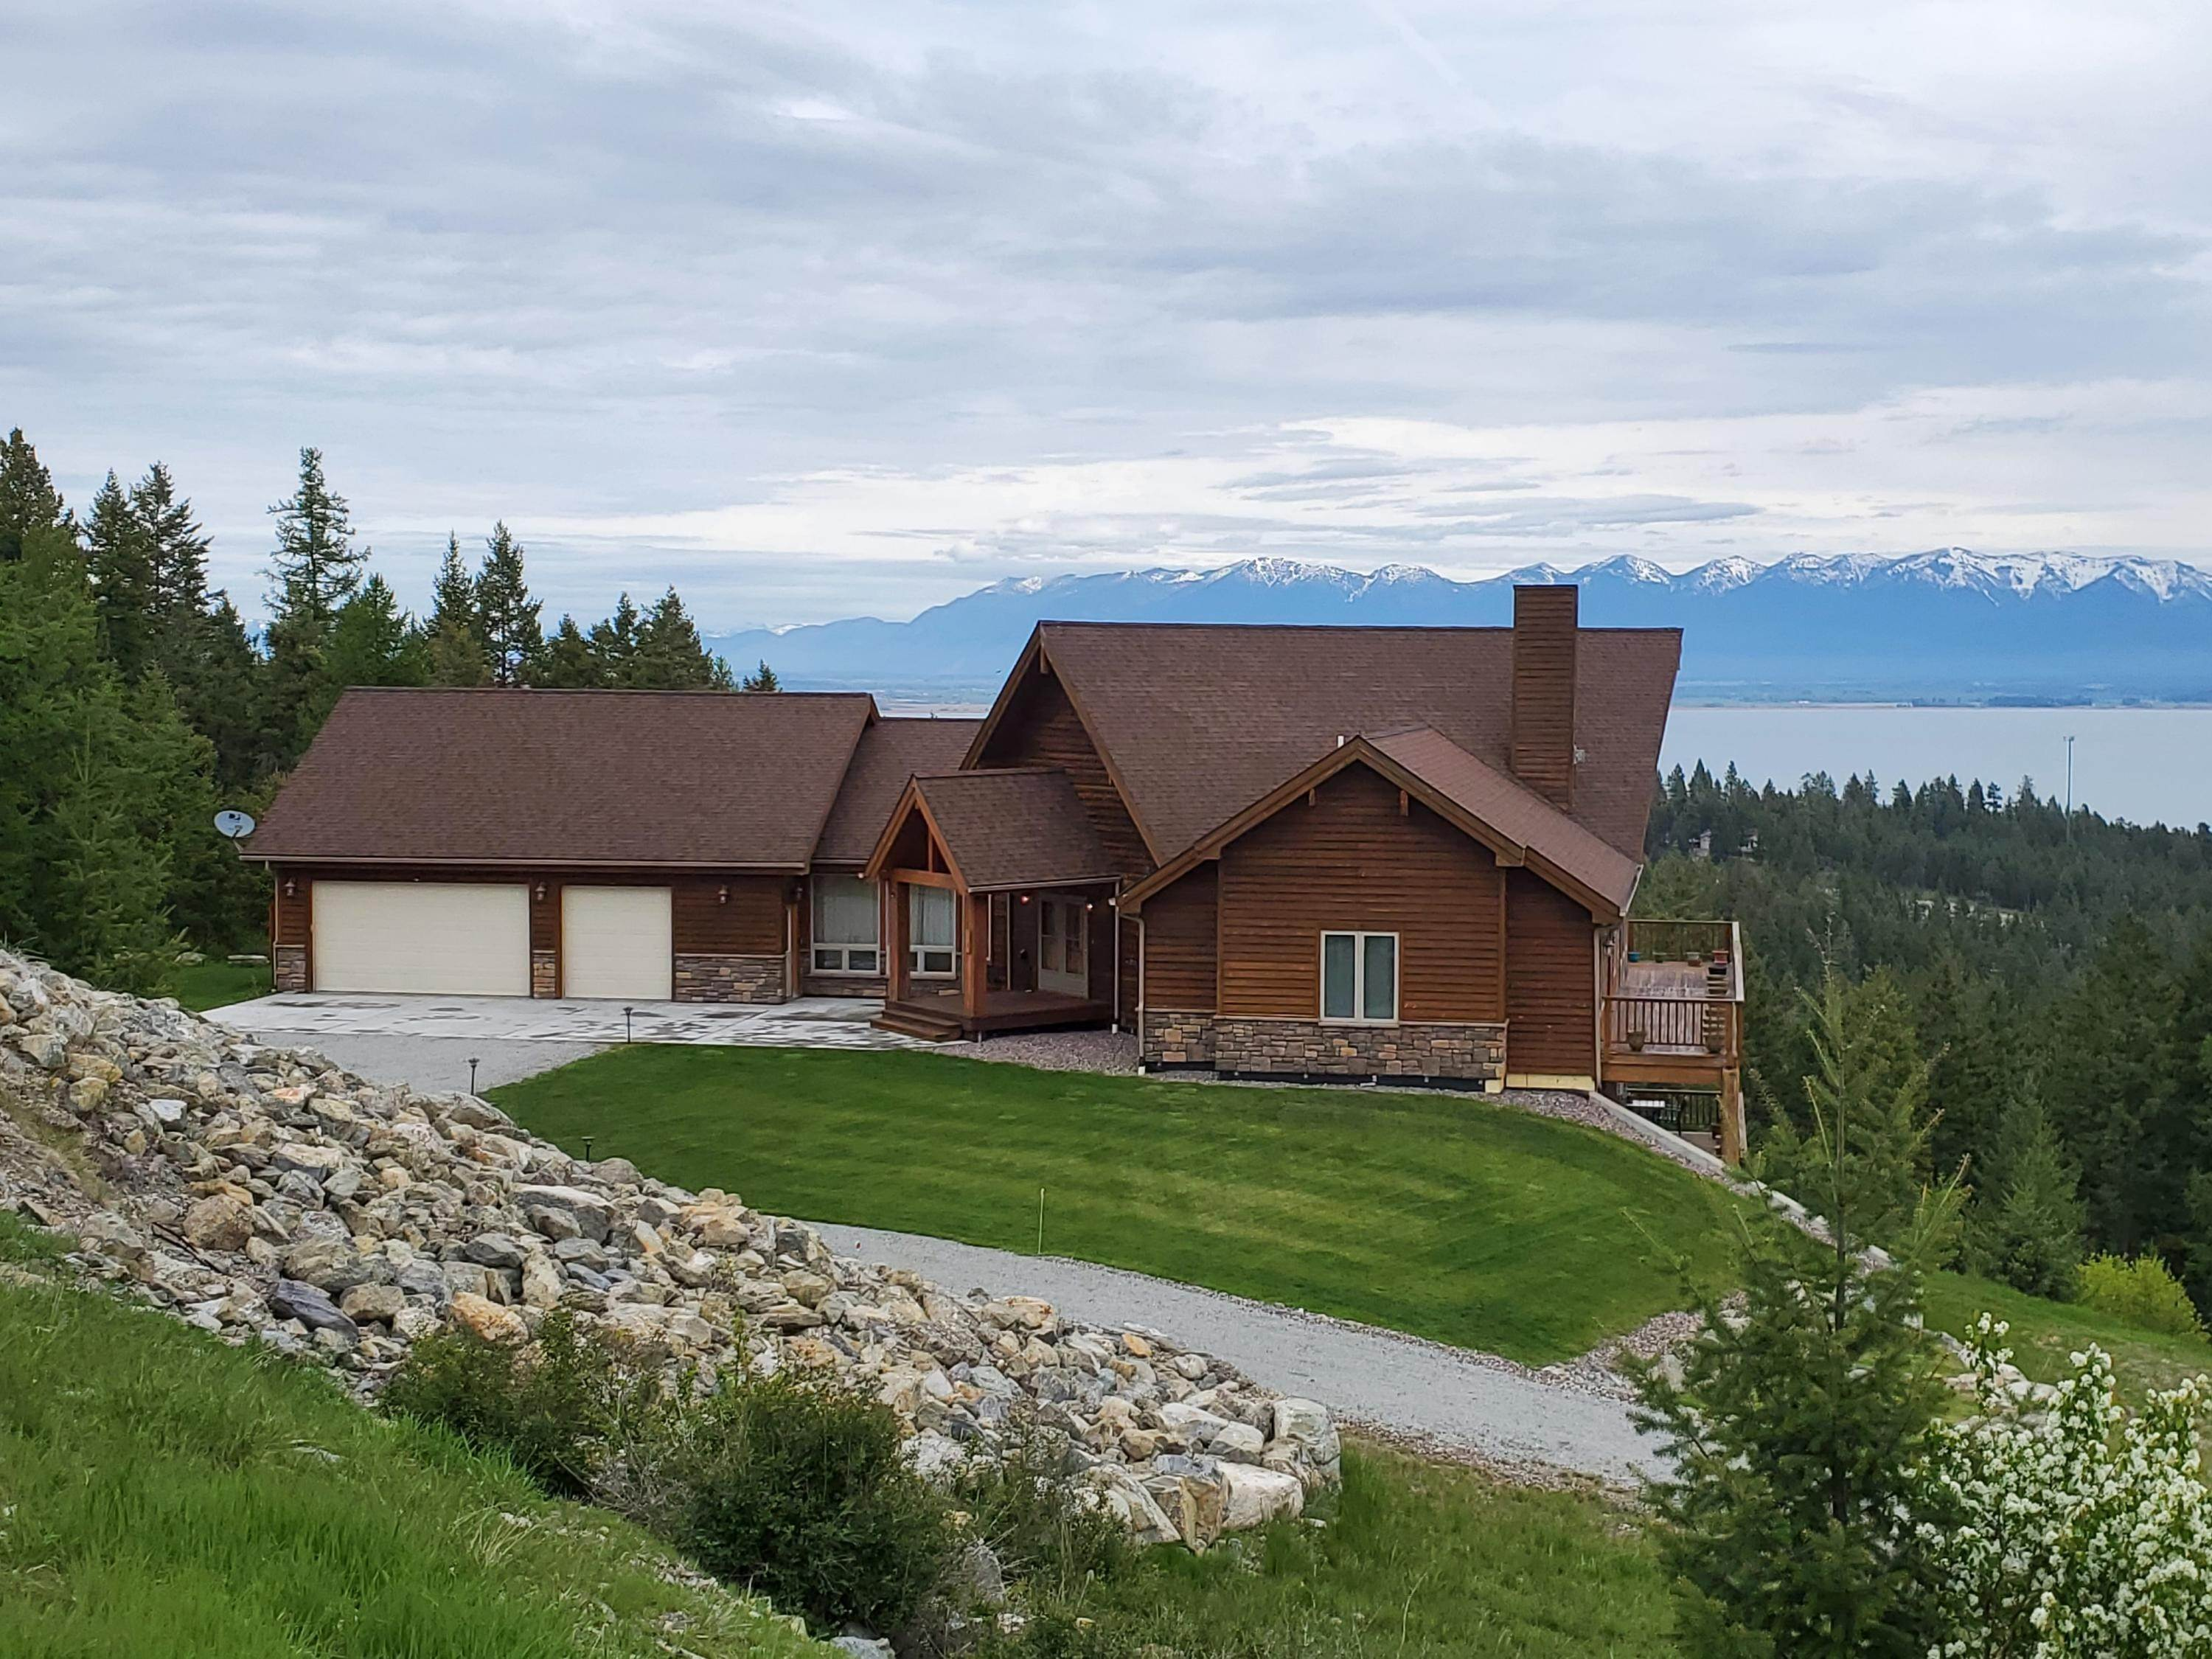 Single Family Homes for Sale at 24 Greenbrae Lane Lakeside, Montana 59922 United States